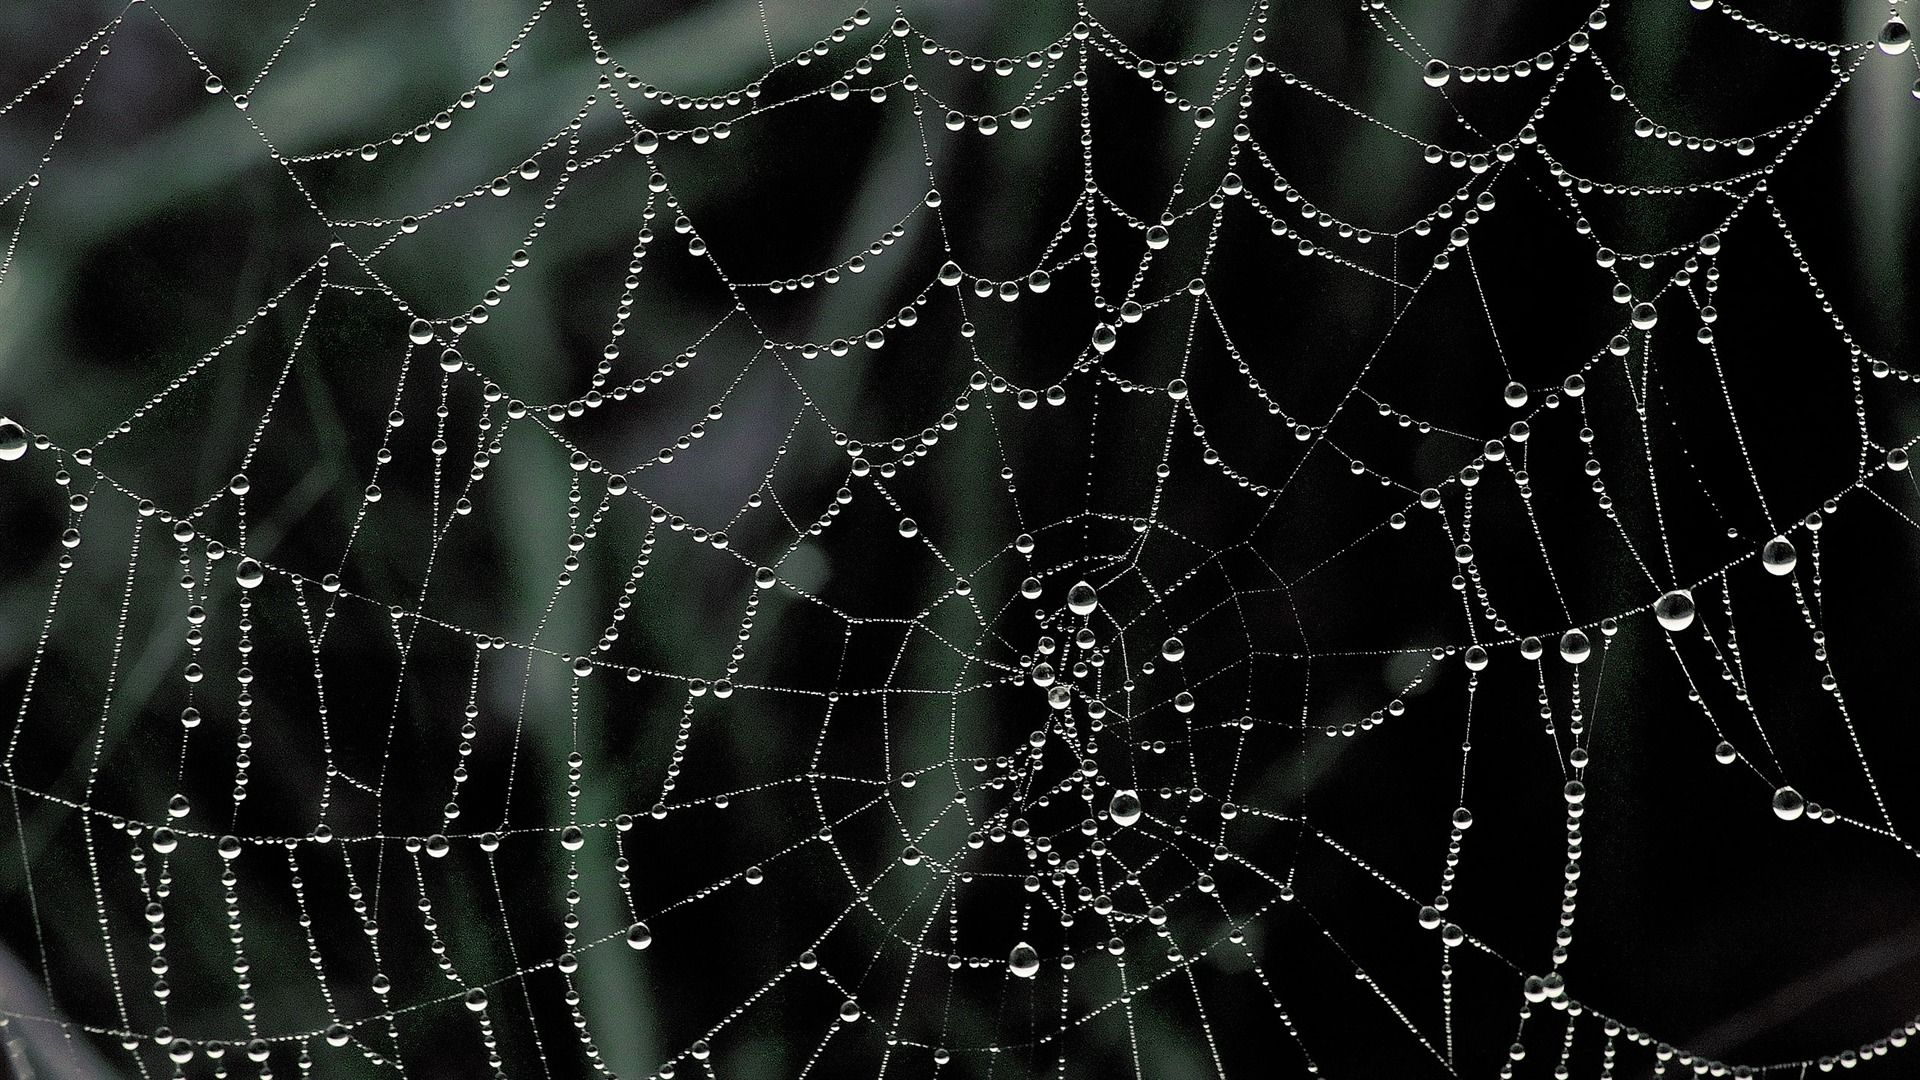 Amazing Spider Web wallpapers Wallpapers HD Wallpapers wallpapers